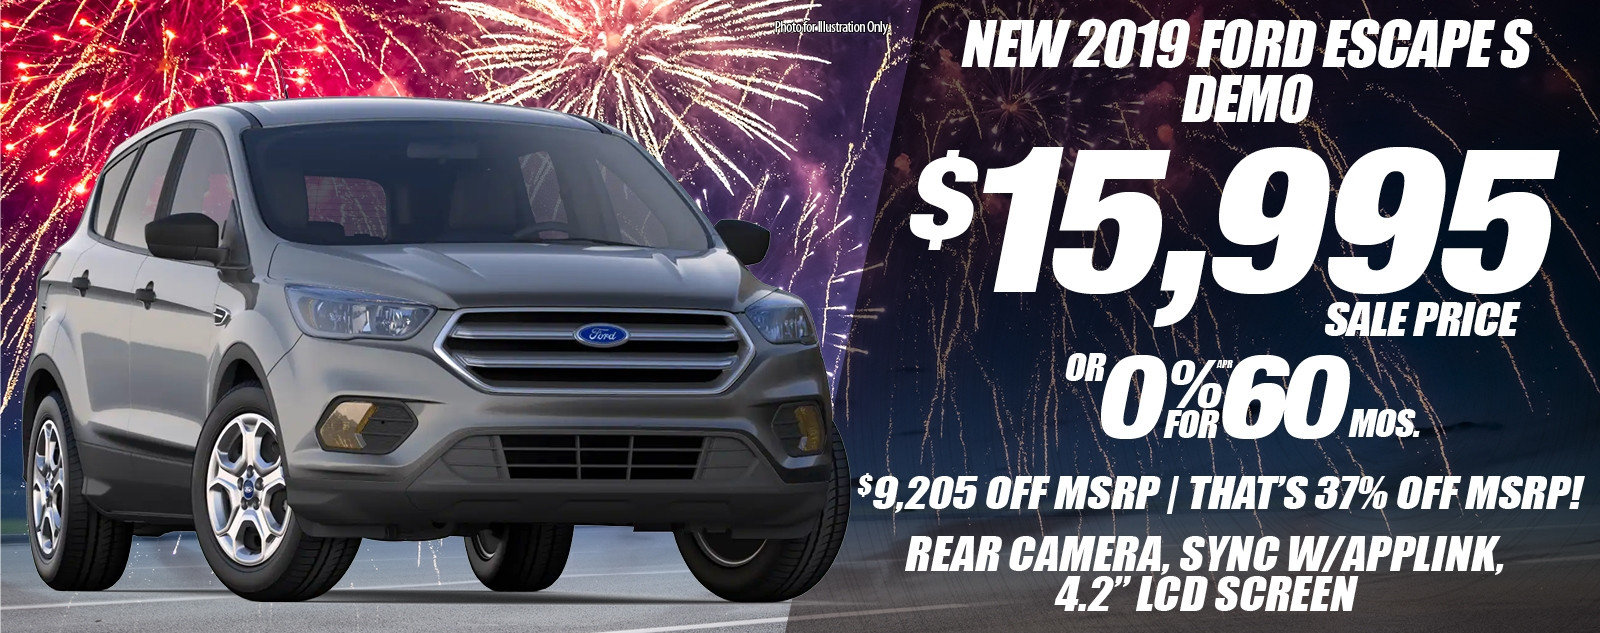 Special offer on 2019 Ford Escape NEW 2019 FORD ESCAPE S DEMO SPECIAL